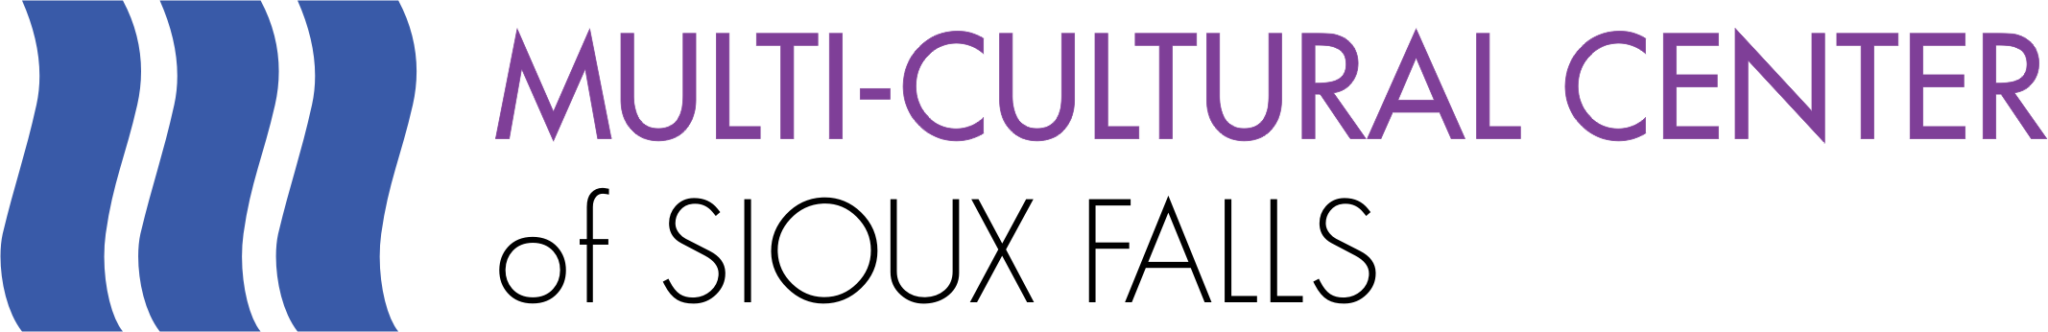 The MCCSF logo, with a transparent background